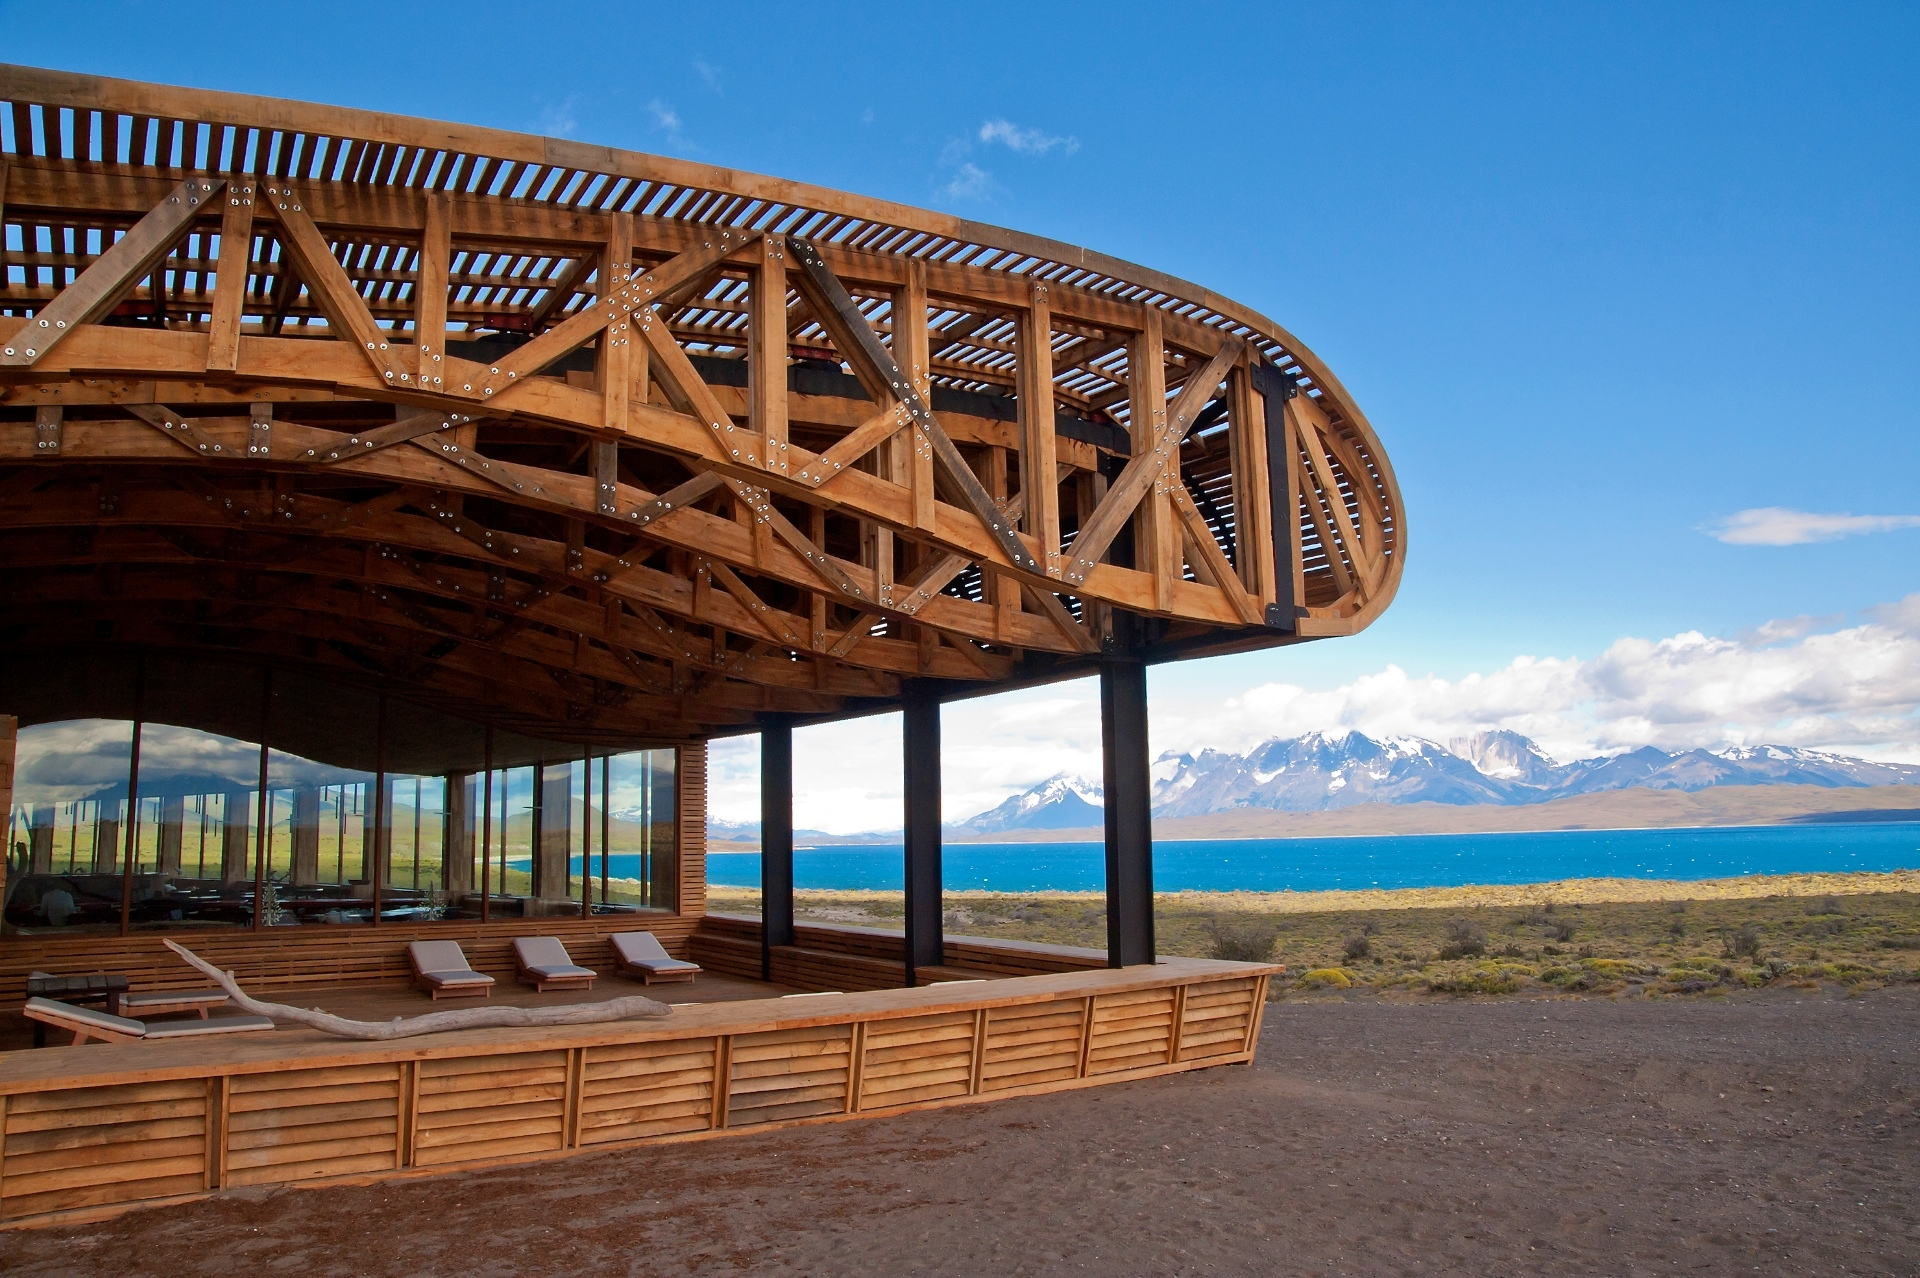 Tierra Patagonia Hotel and Spa Patagonia CHile South America Adventure South America